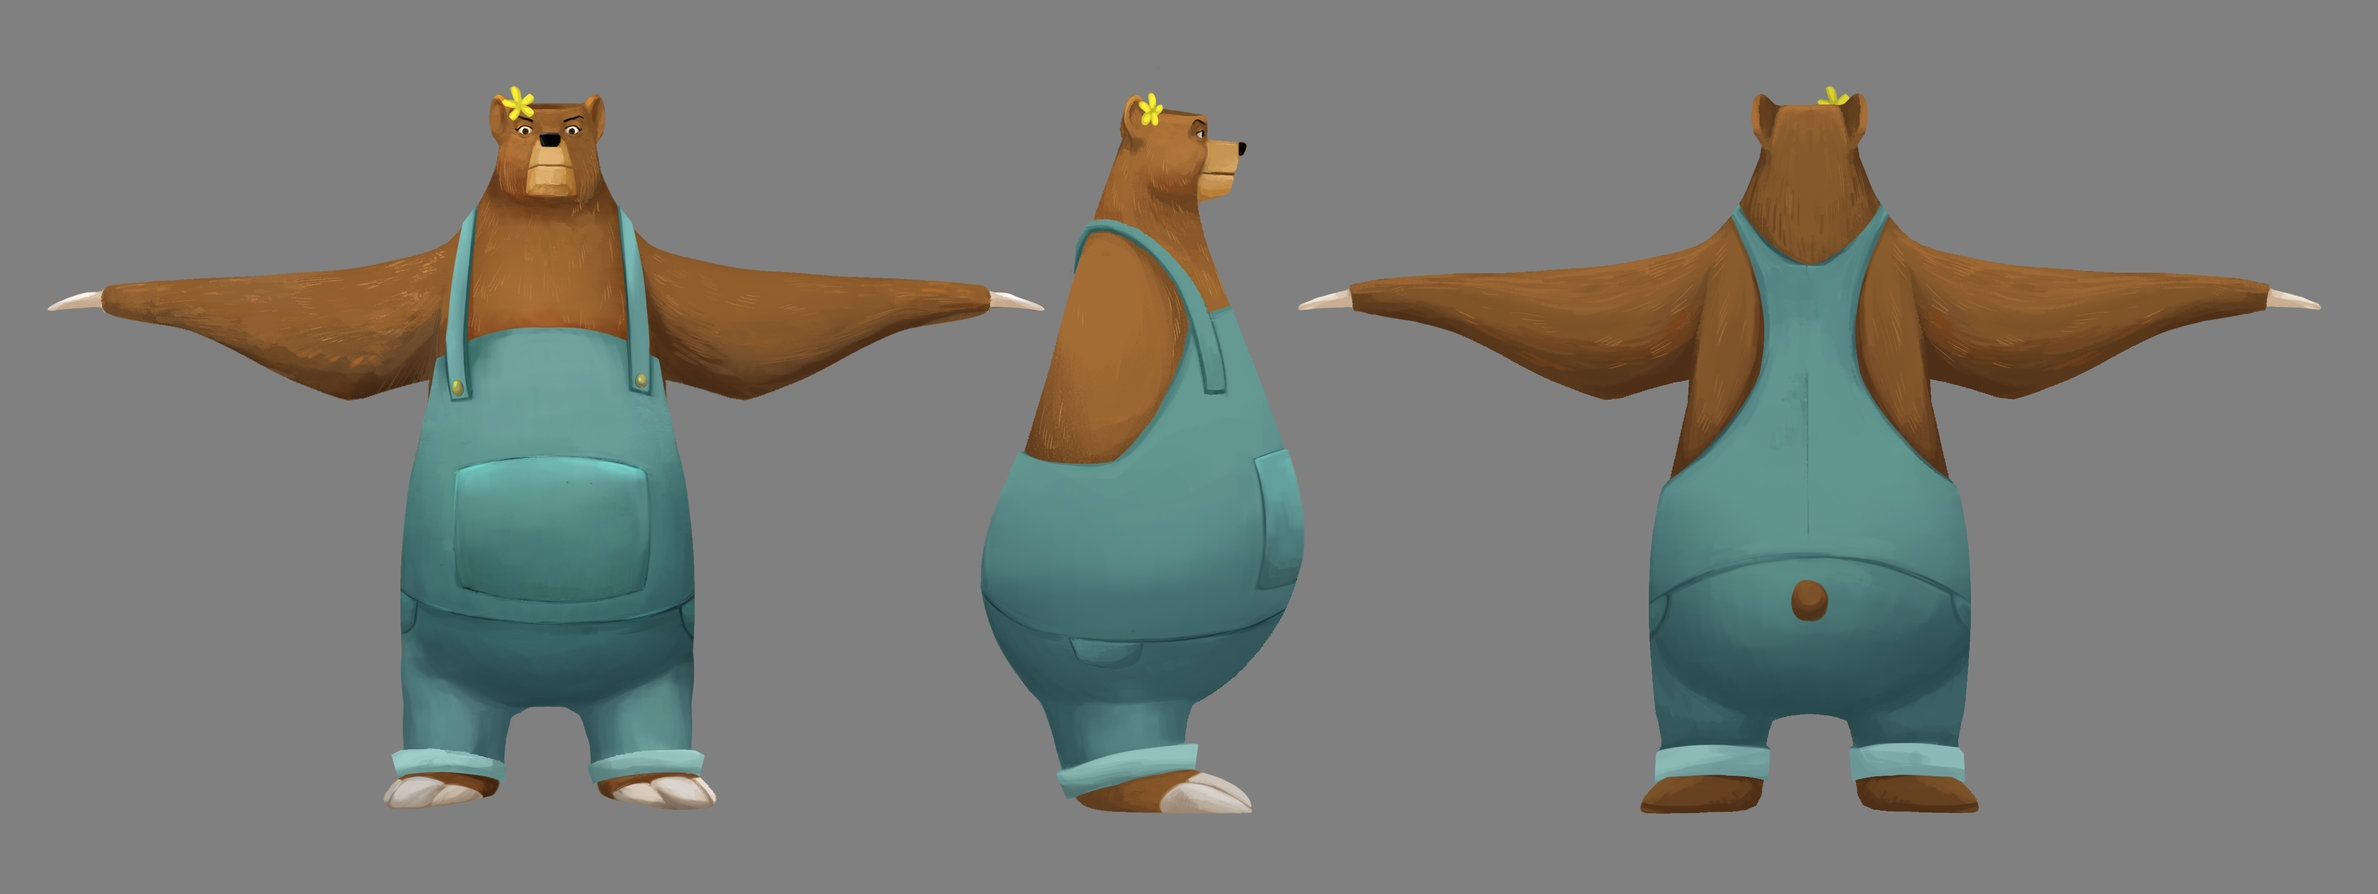 Mama Bear character design by Abigail Munoz, 3D Model by Ariadna Nussberg, texture paintover by Cindy Lee.